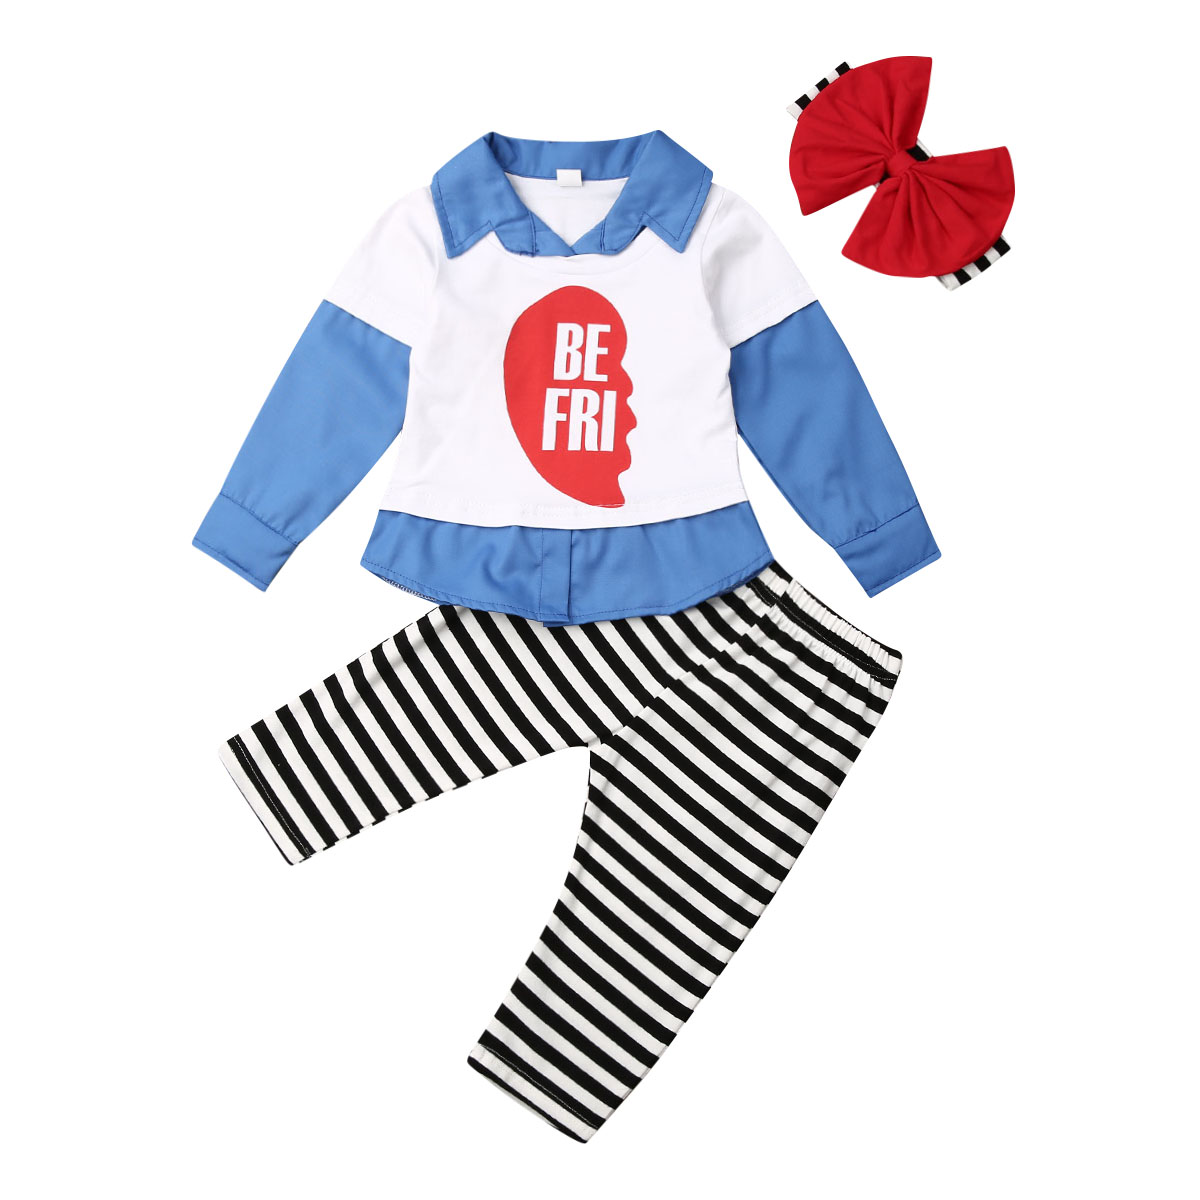 2019 brand new Toddler Baby Girl <font><b>Kid</b></font> <font><b>BEST</b></font> <font><b>FRIEND</b></font> Matching Outfits 3pcs Clothes <font><b>Shirt</b></font> Top Pants image